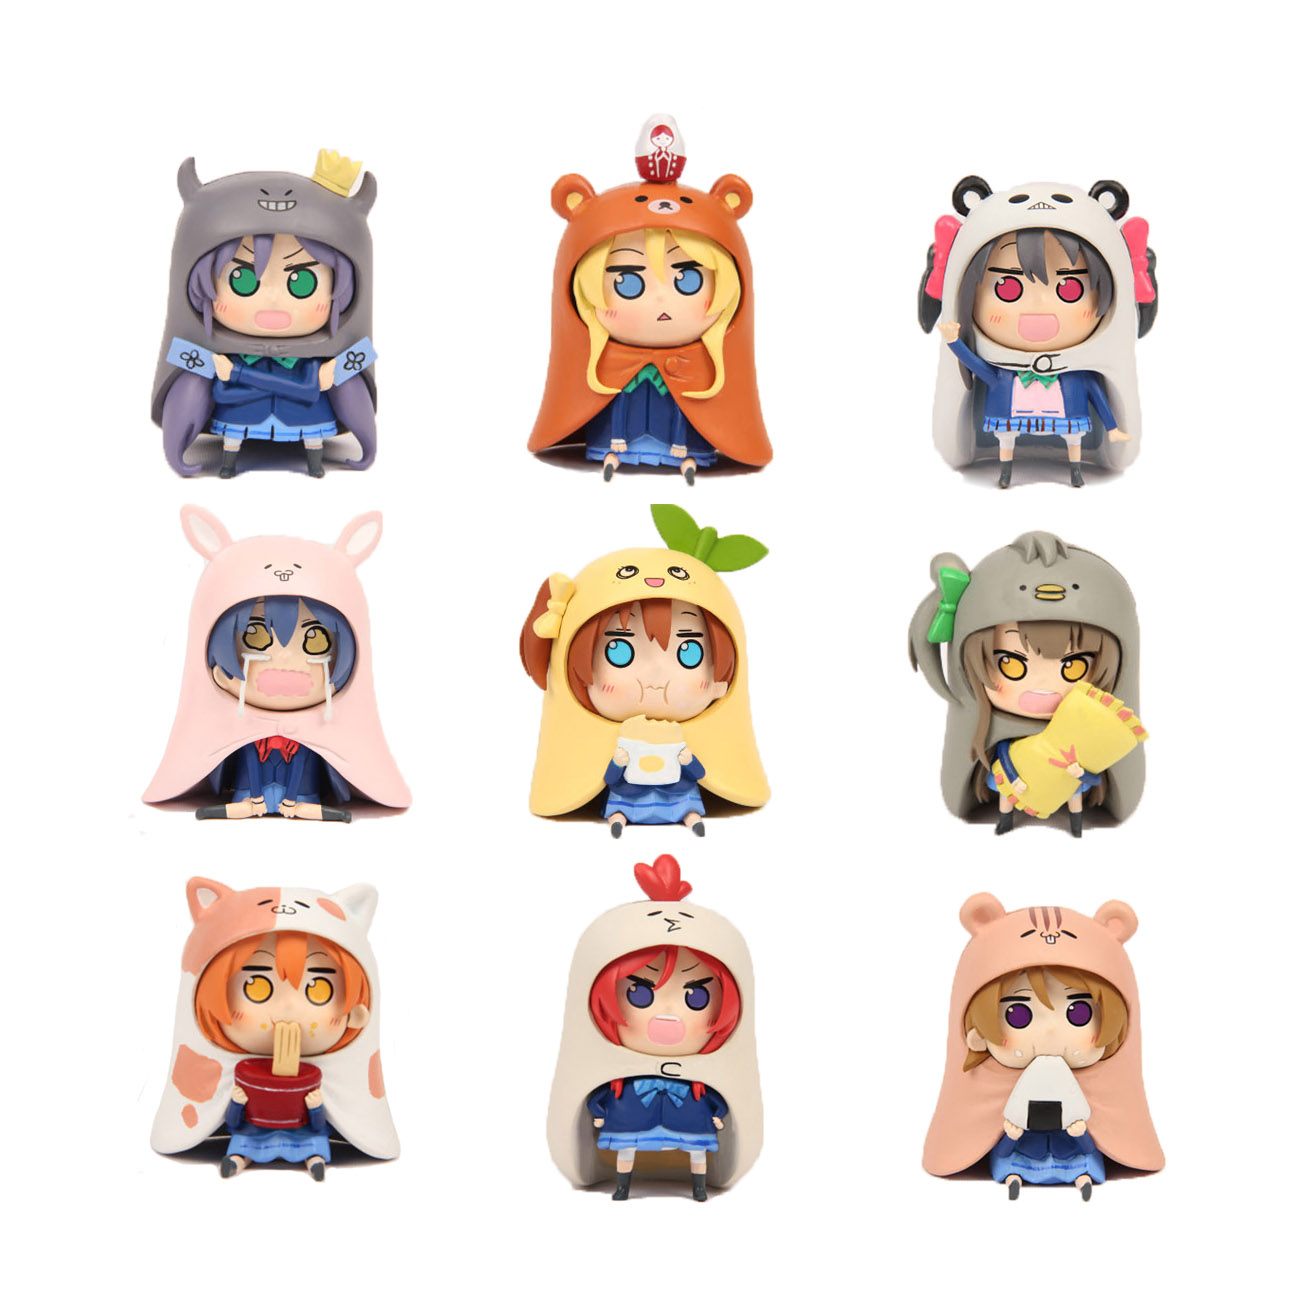 GSC Nendoroid 9pcs Set Japanese Anime Figure U M R Cute Nendoroid Doma Umaru PVC Action